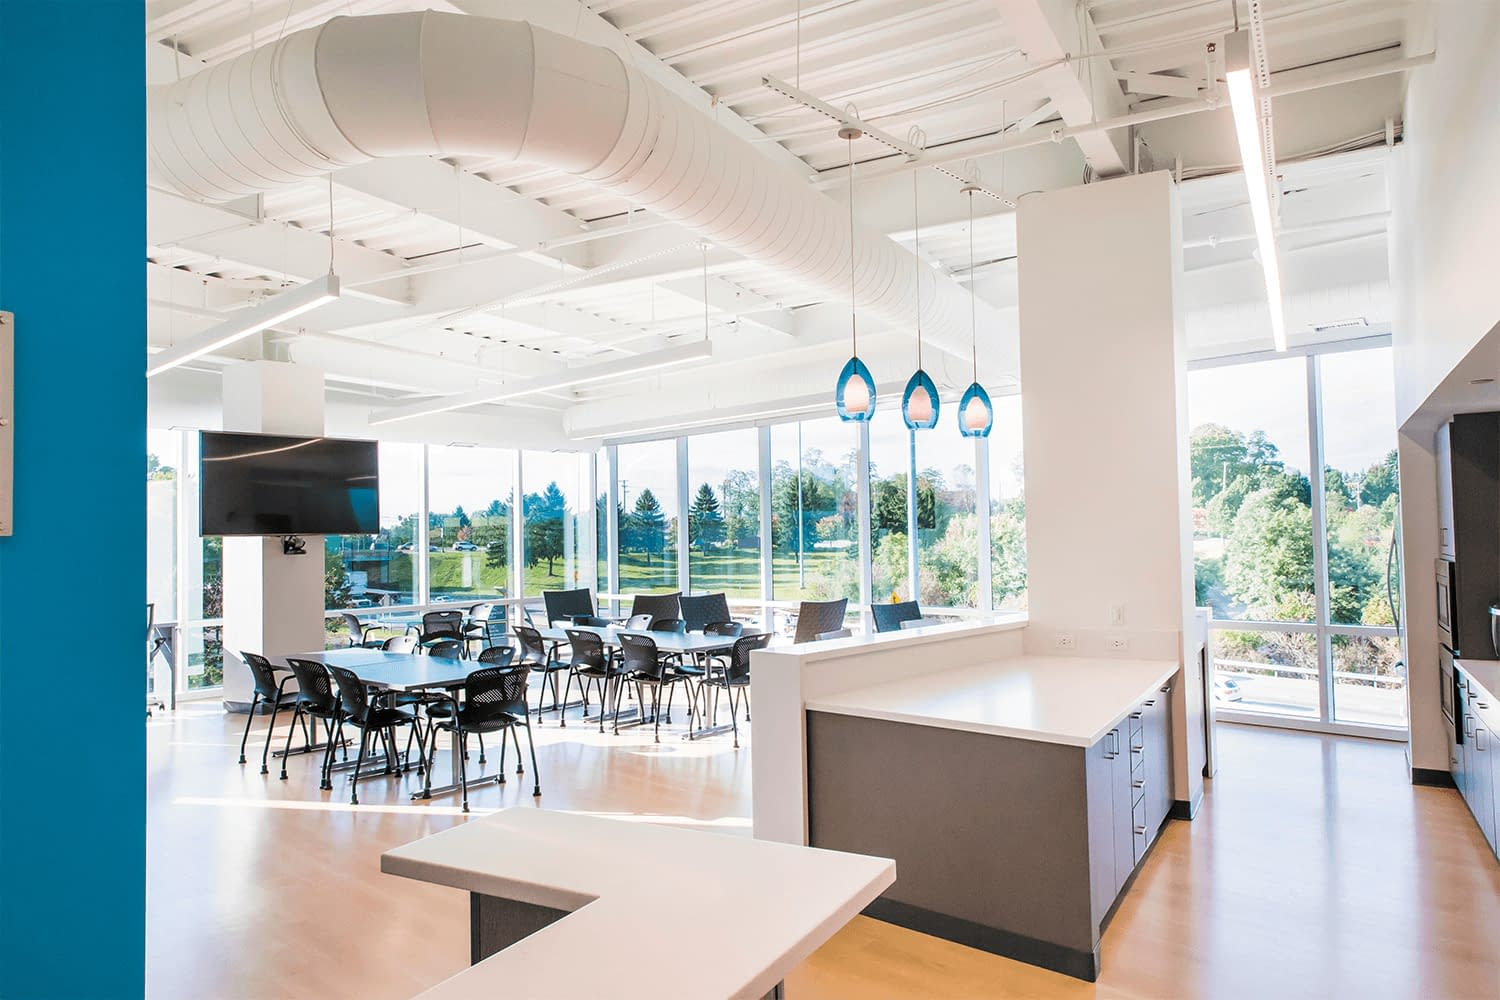 café/break area with bright white ceiling, floor-to-ceiling windows, with chairs and tables